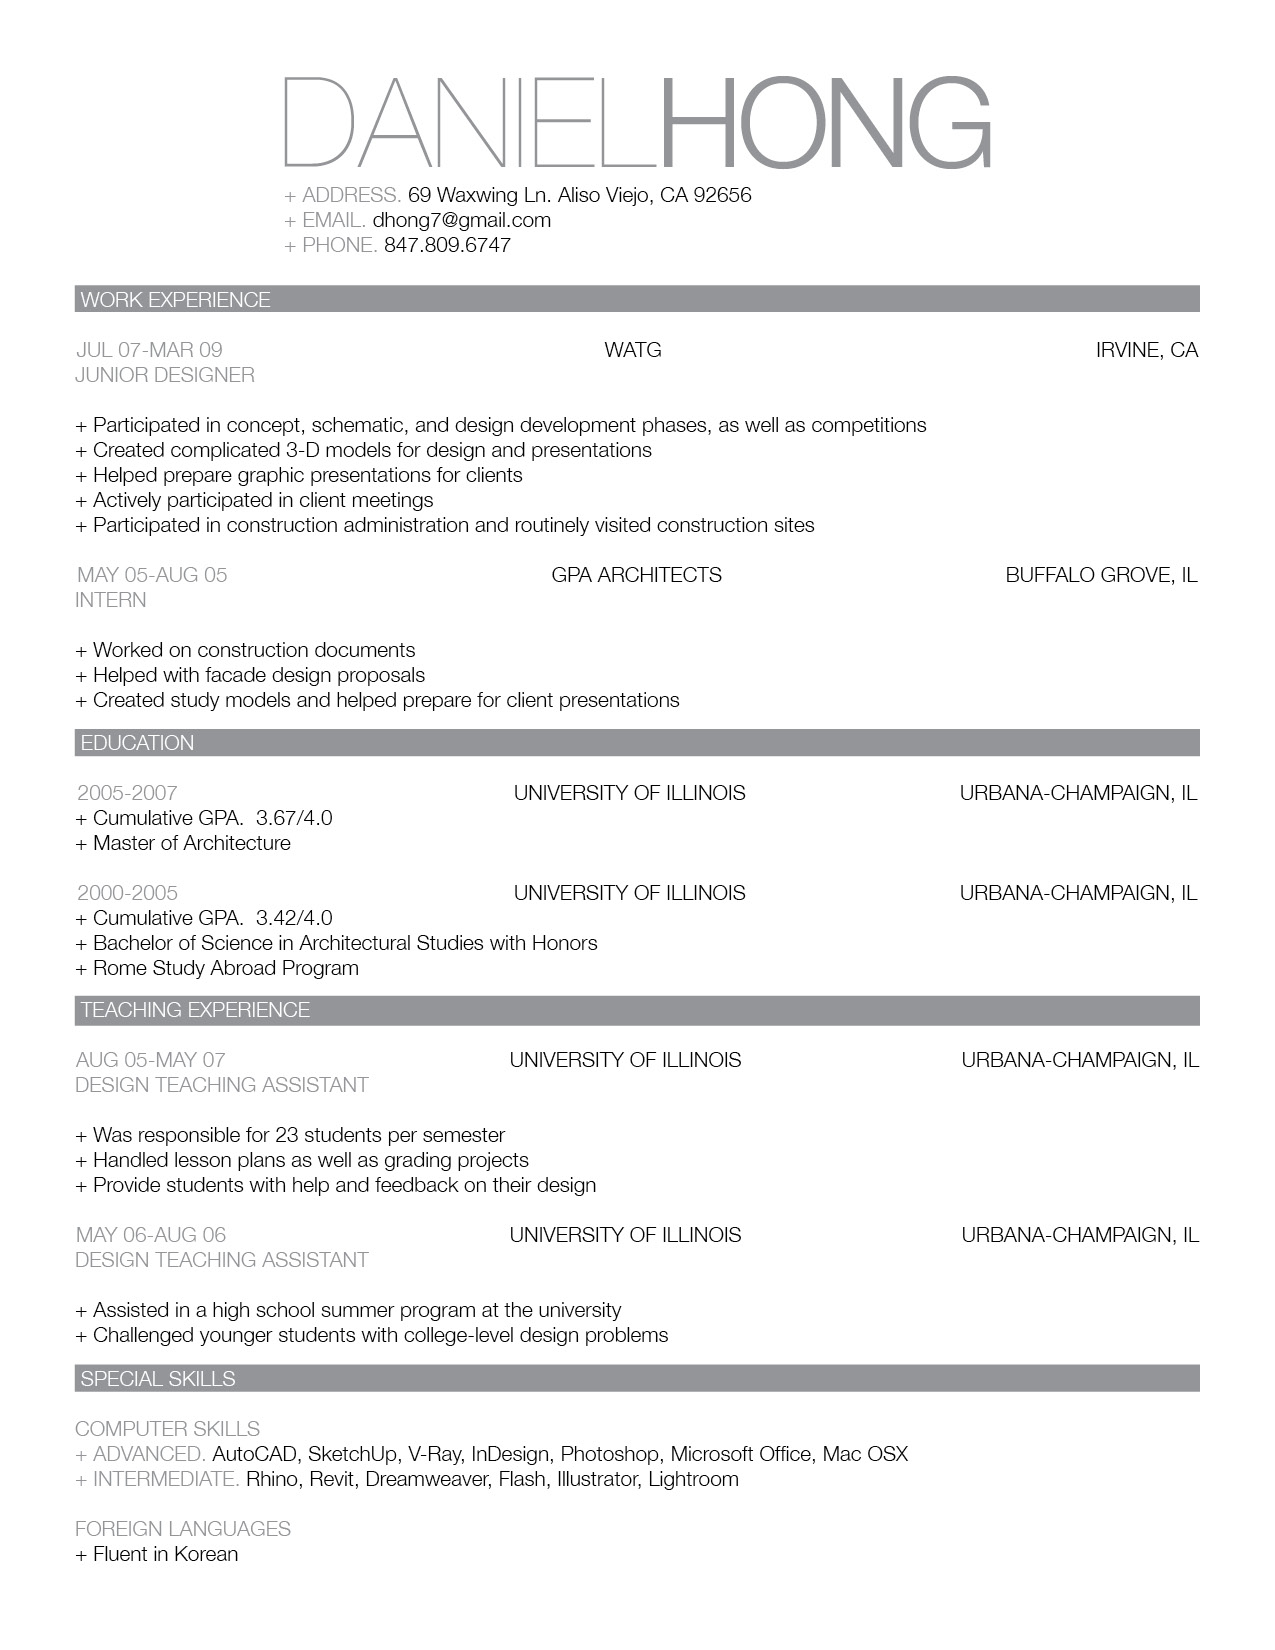 a very good resume format resume samples resume examples a very good resume format letter resume professional format template example updated cv and work sample